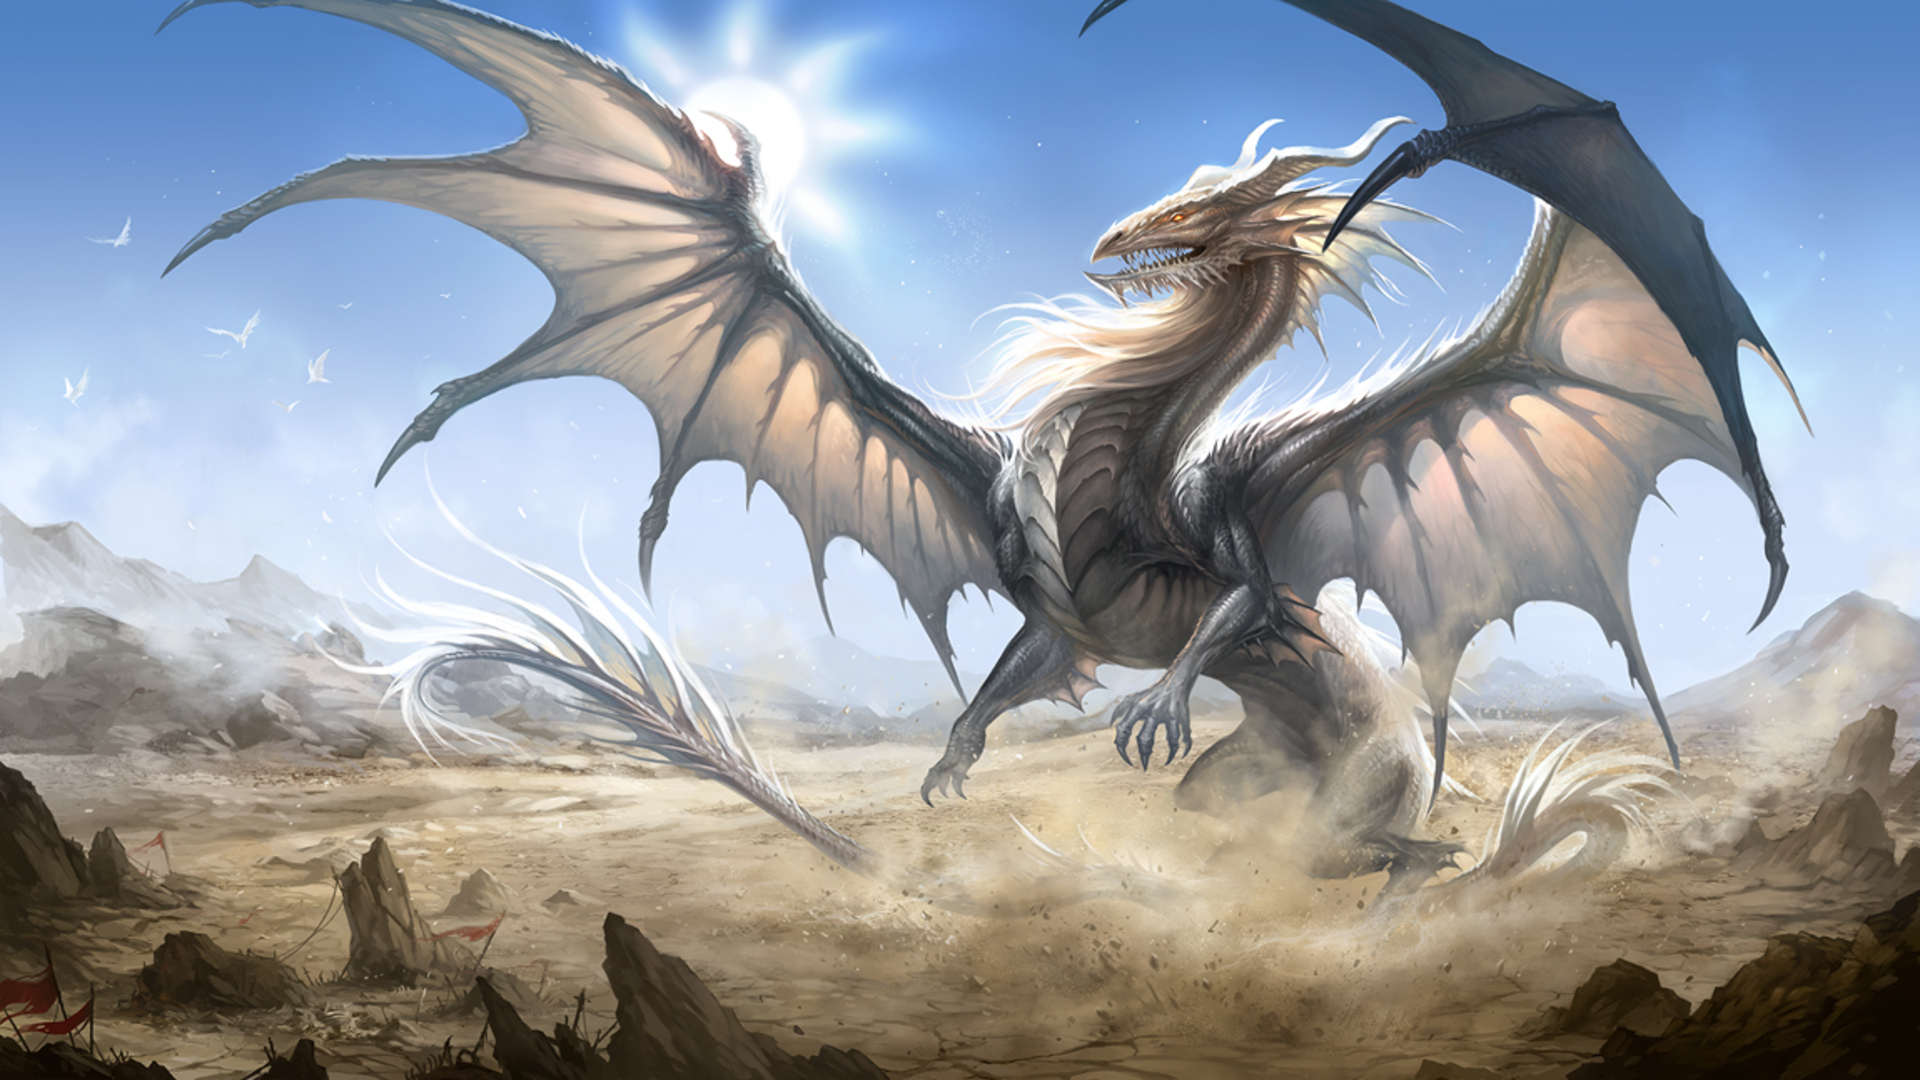 Dragon Wallpaper Free PC Wallpapers SaxonyBlue